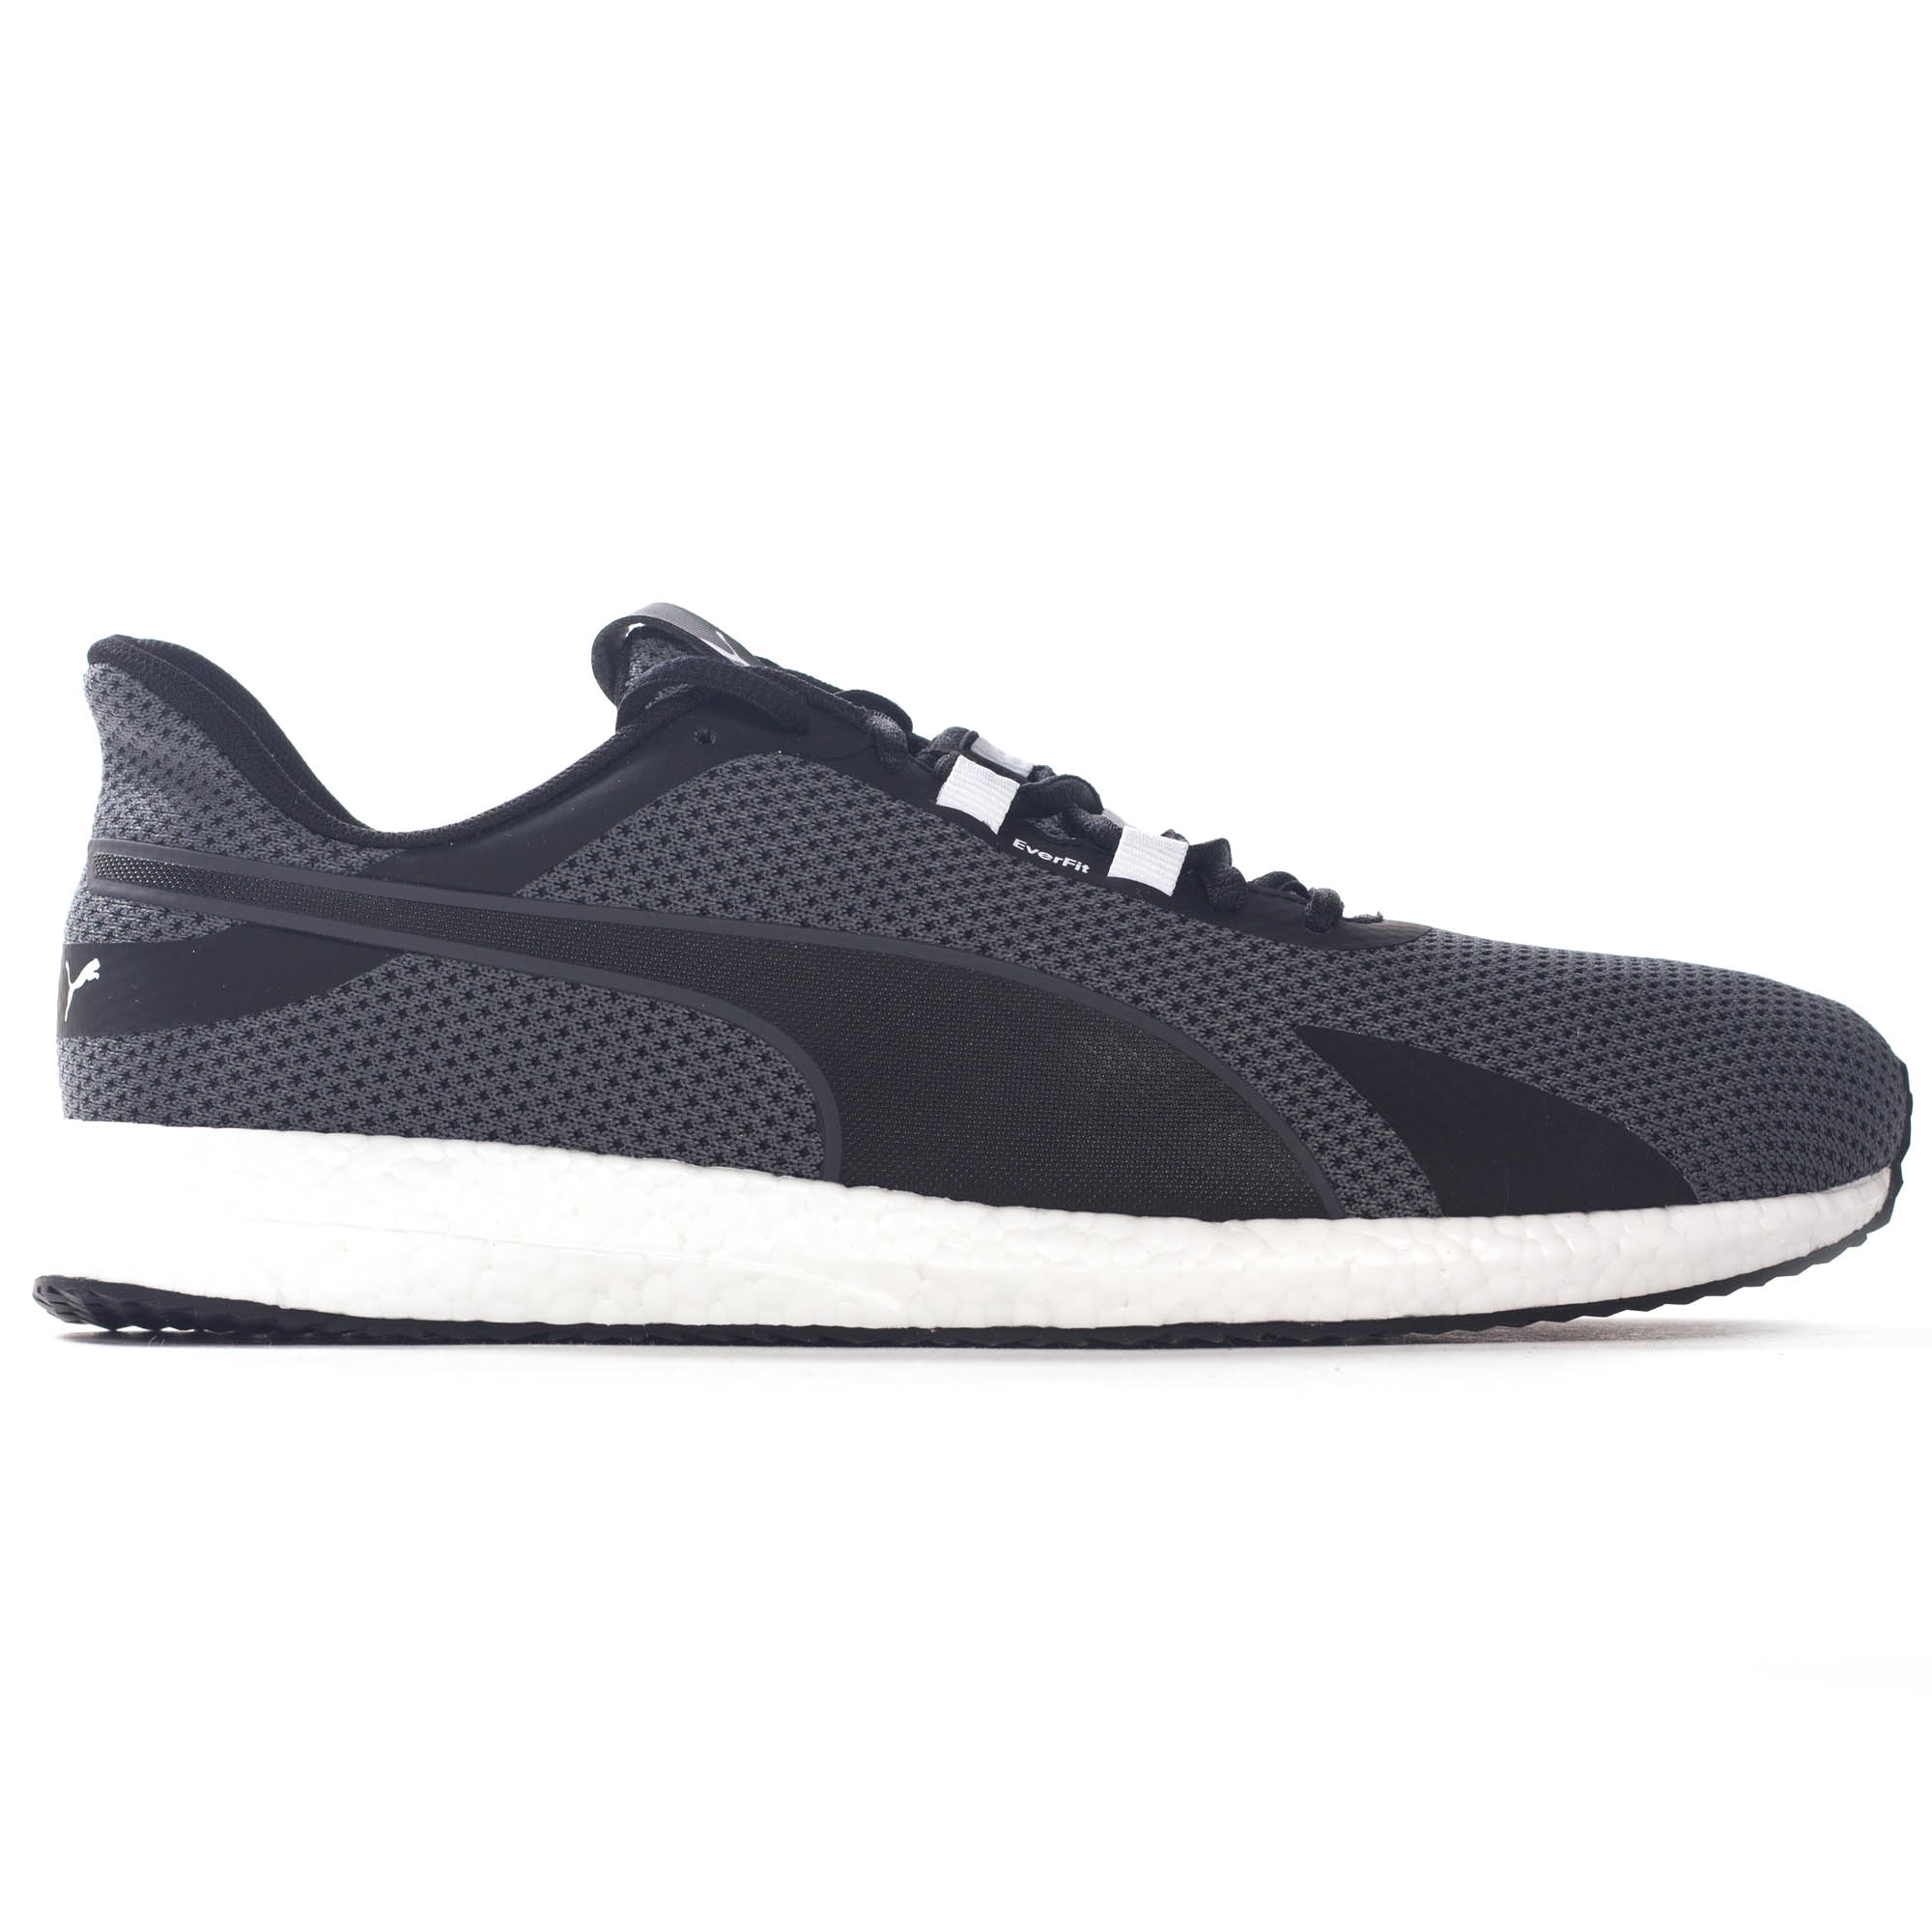 c68fc7b2a15 Details about Puma Mega NRGY Turbo Mens Running Fitness Trainer Shoe Grey  Black